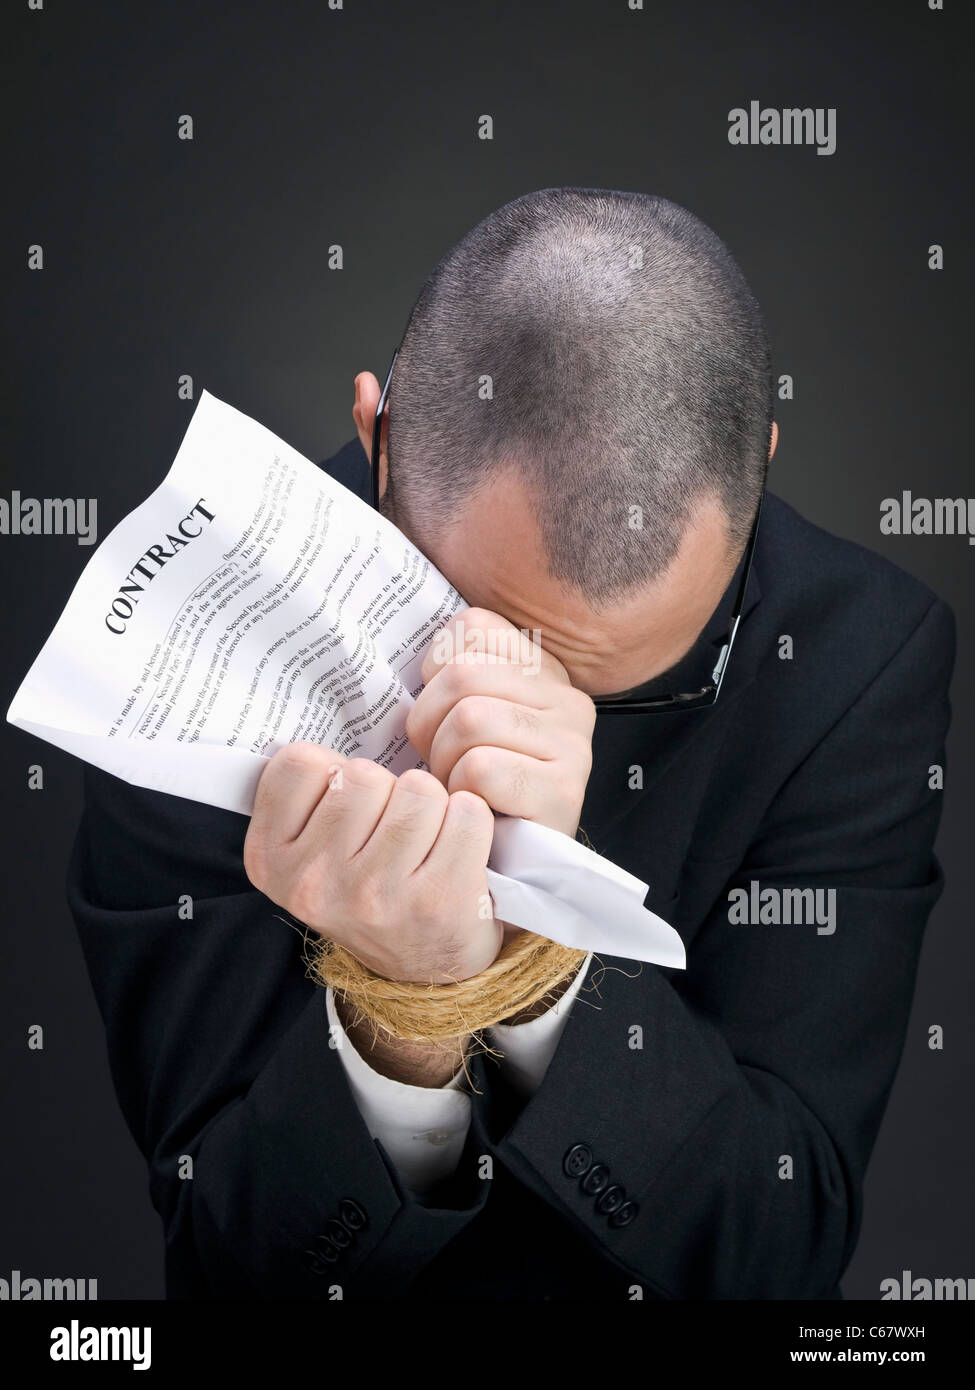 A man on a suit holds a contract on his tied hands. - Stock Image